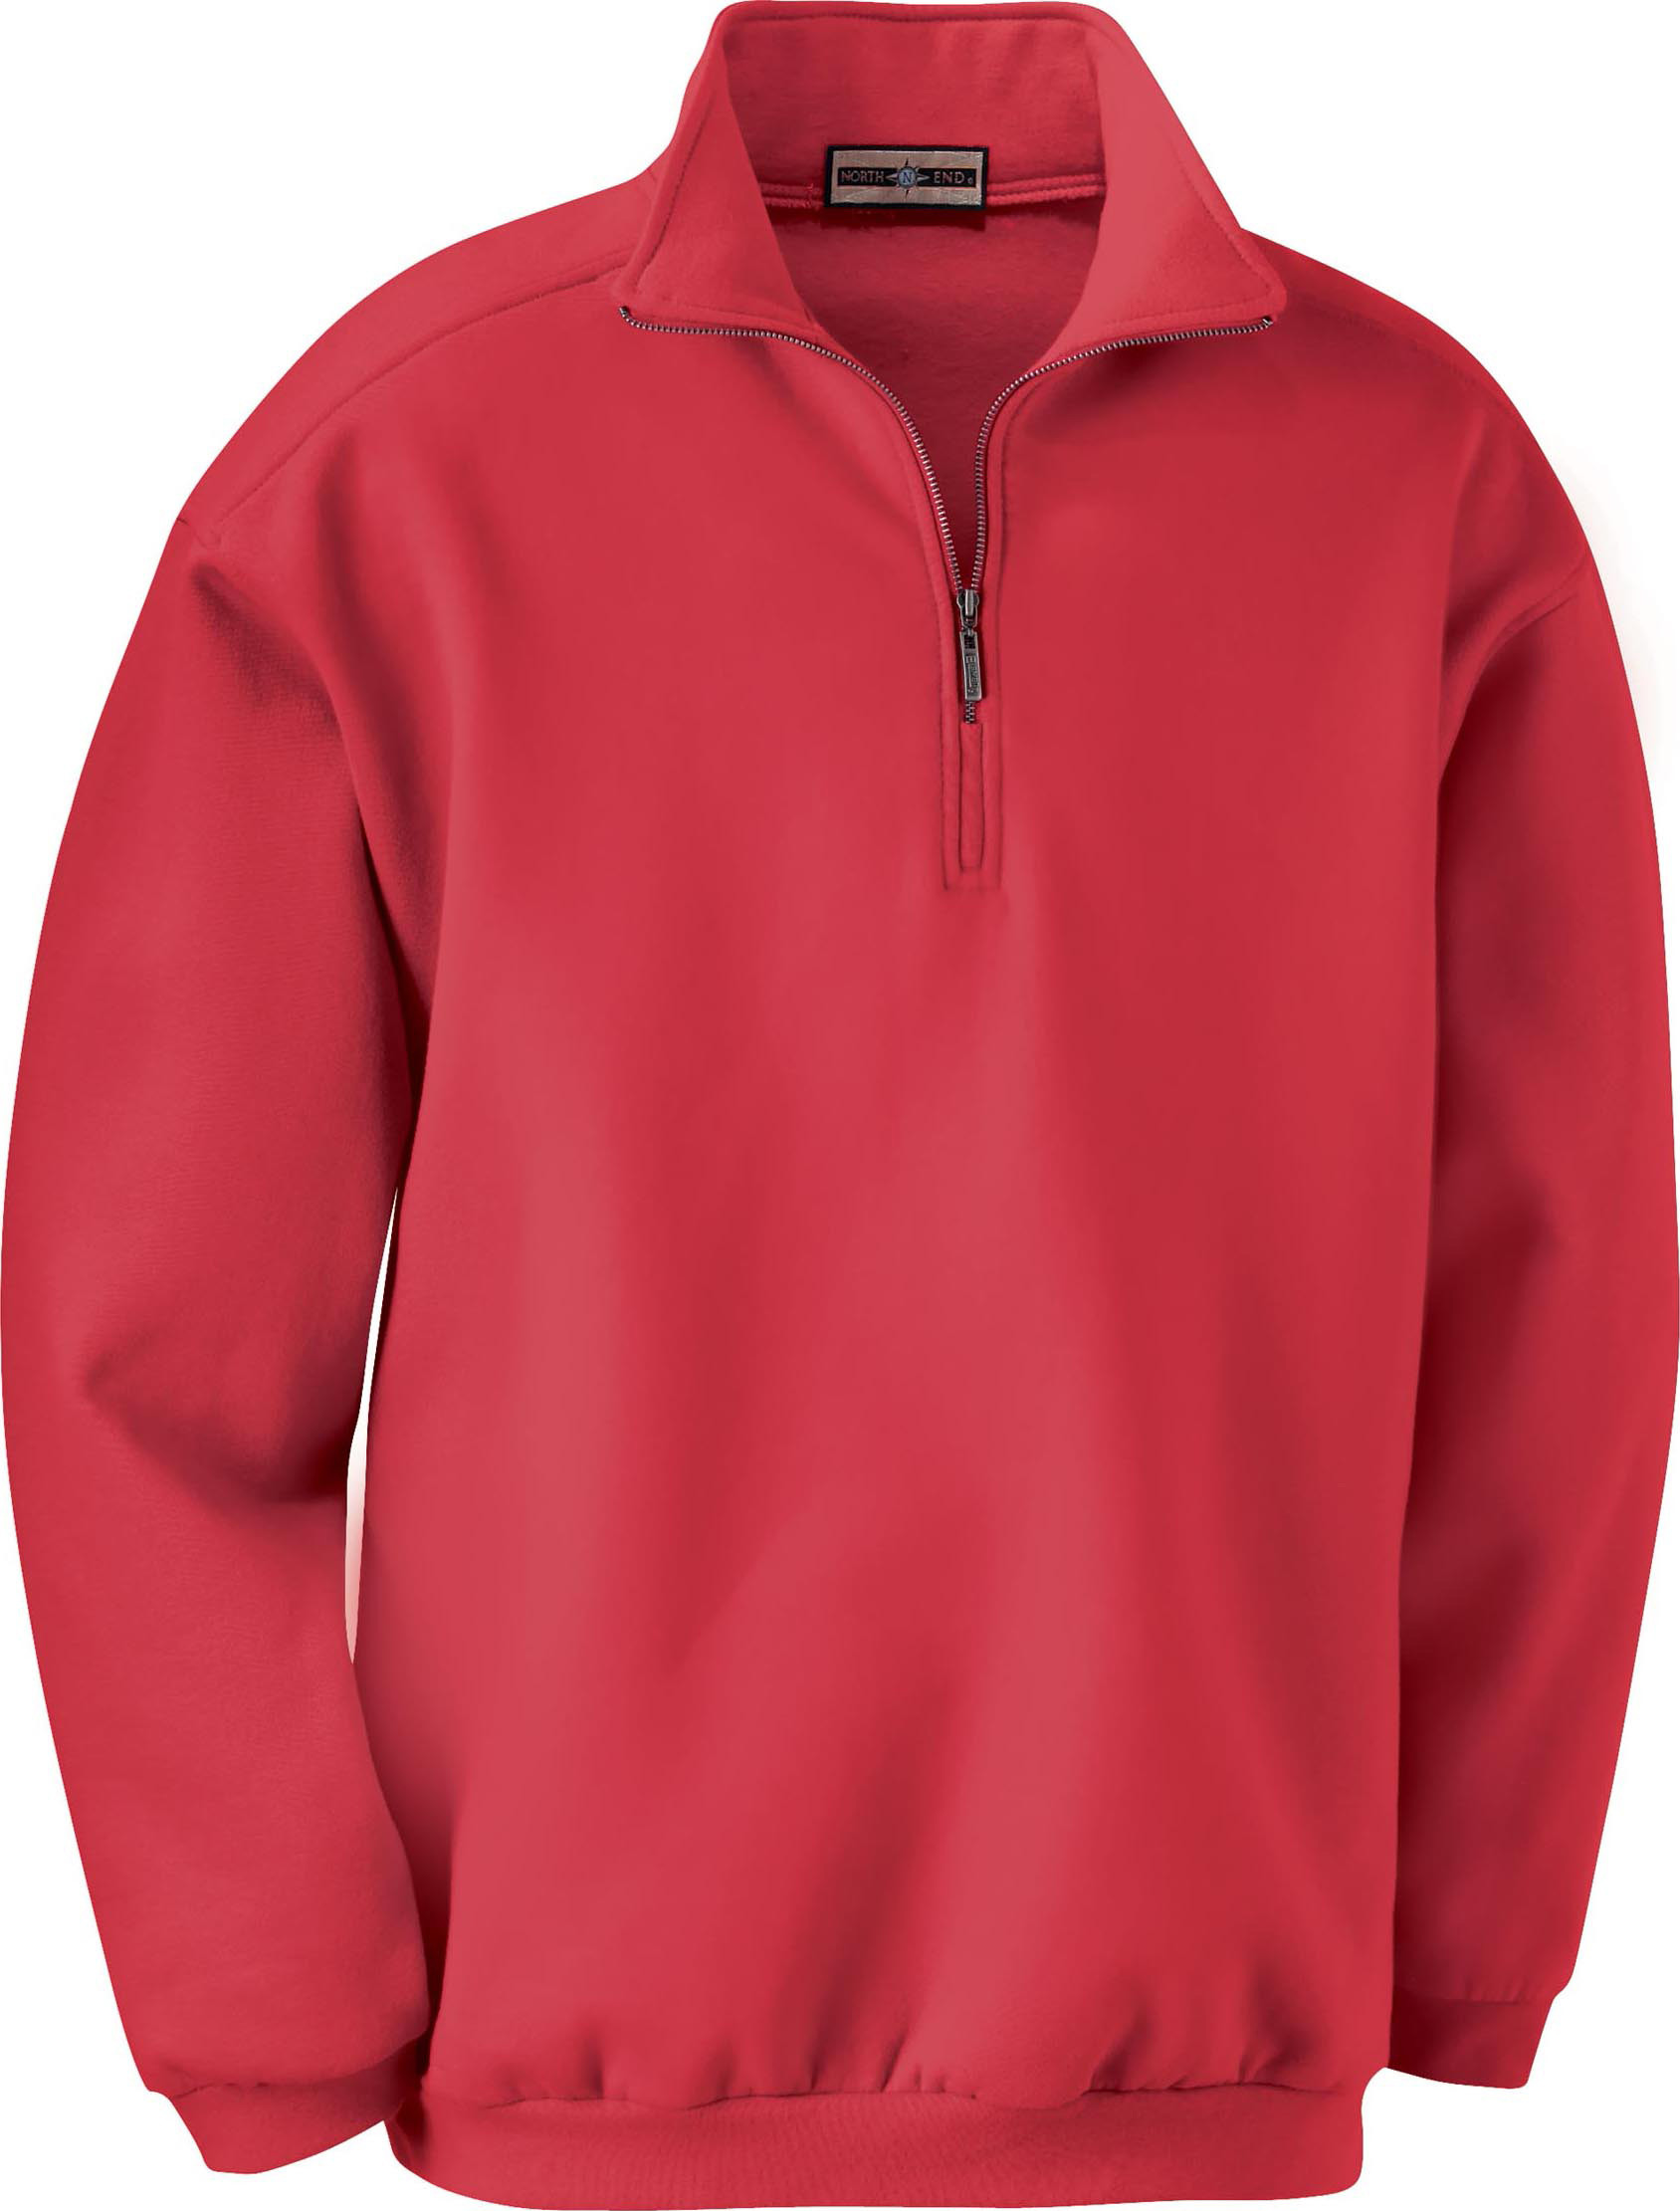 Ash City Cotton/Poly Fleece 221442 - Men's Classical ...